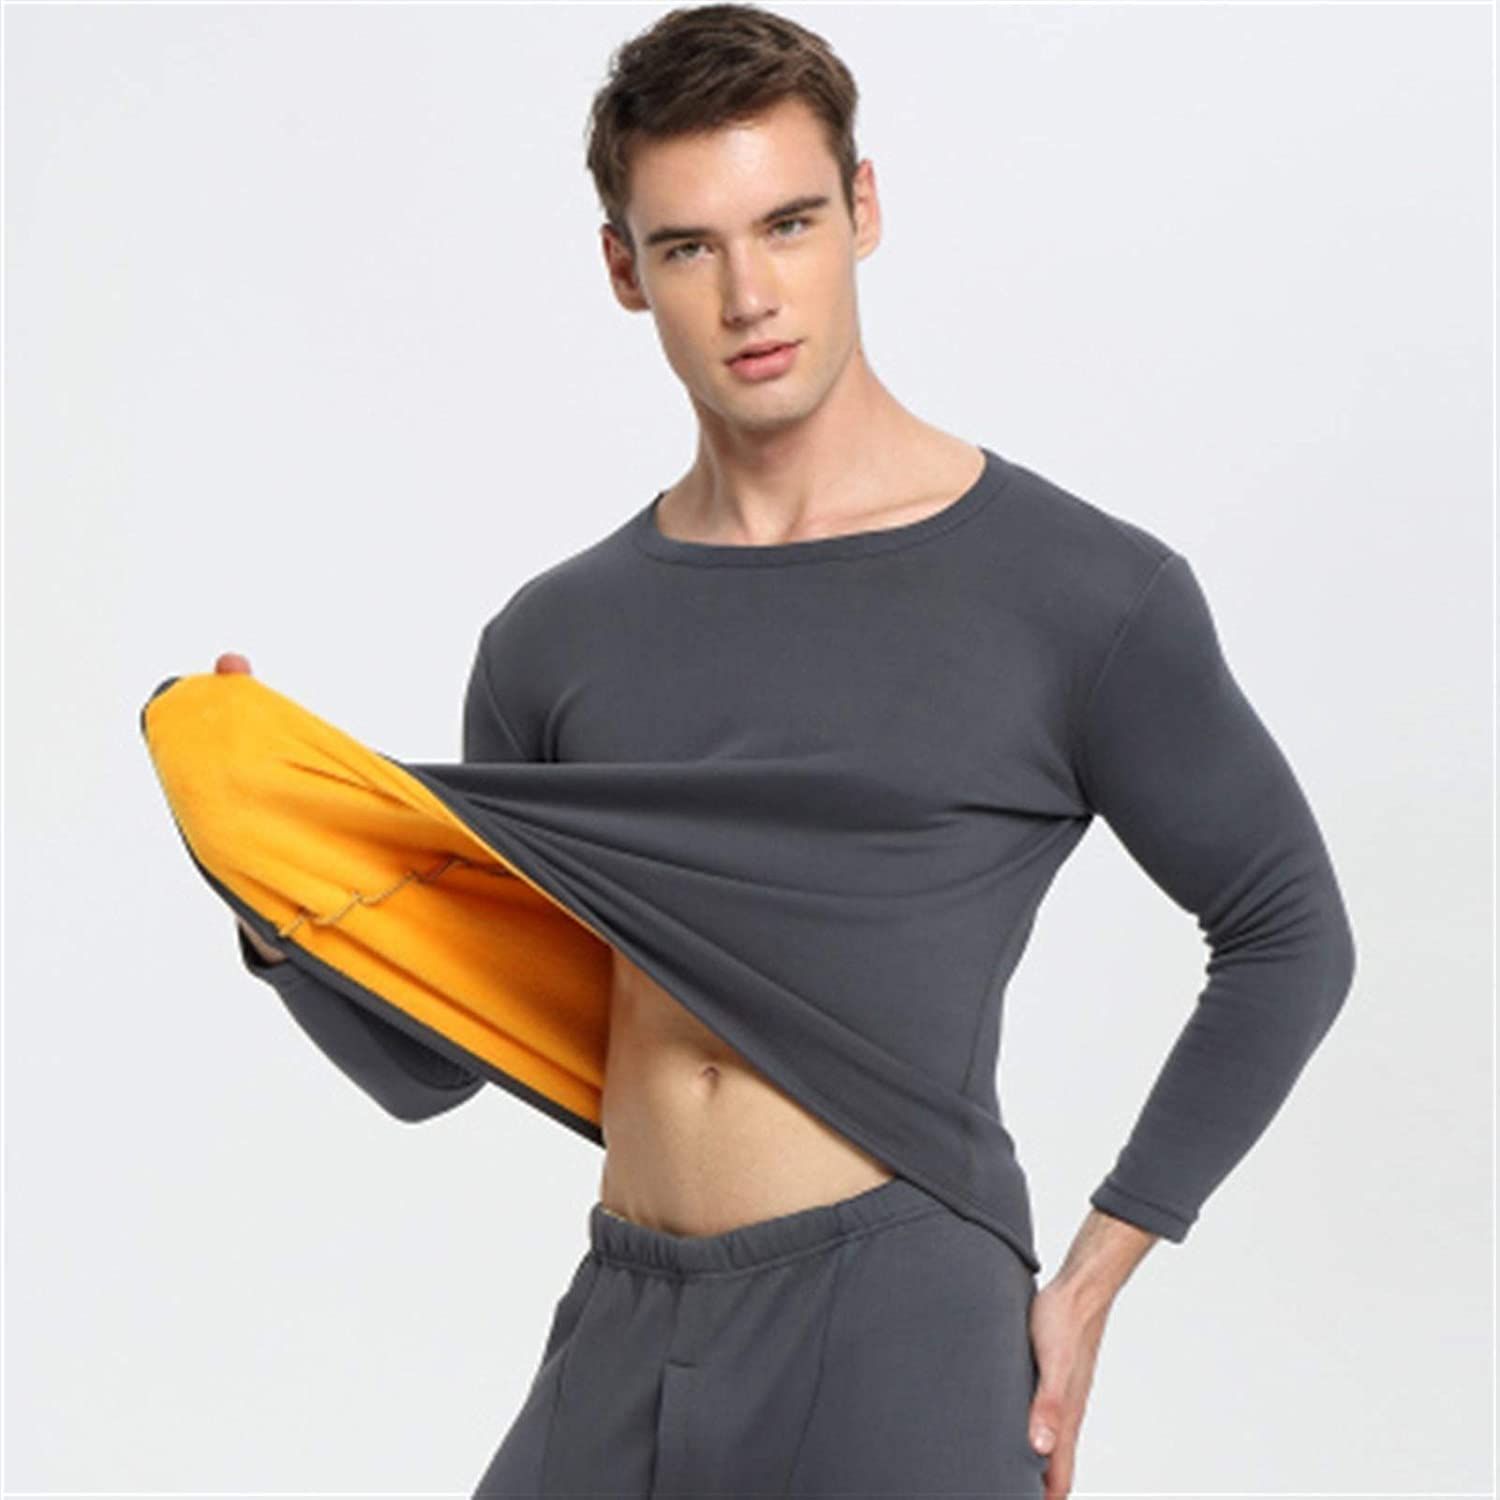 ZHANGZEHONG Thermal Underwear Men Winter Women Long Johns Sets Fleece Keep Warm in Cold Weather Size L to 6XL (Color : Deep Gray, Size : XXL)